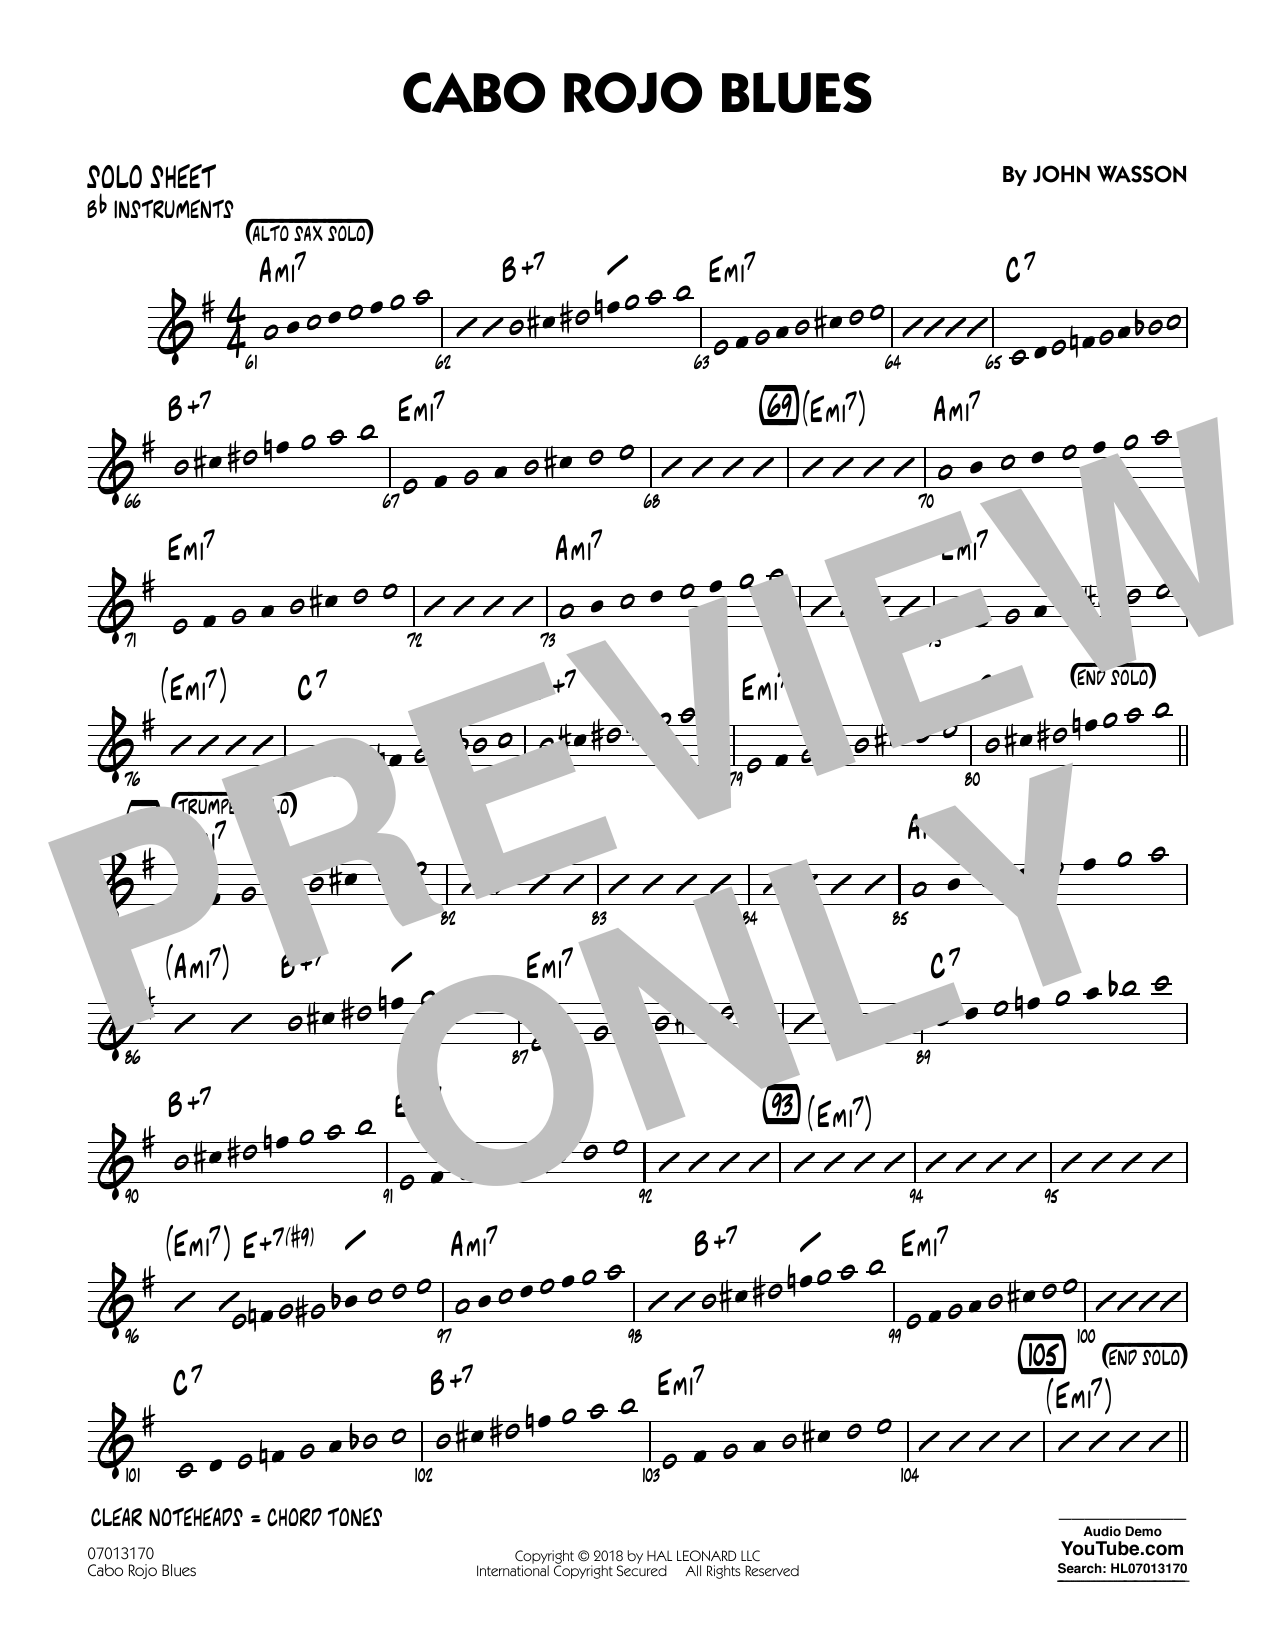 John Wasson Cabo Rojo Blues - Bb Solo Sheet sheet music notes and chords. Download Printable PDF.